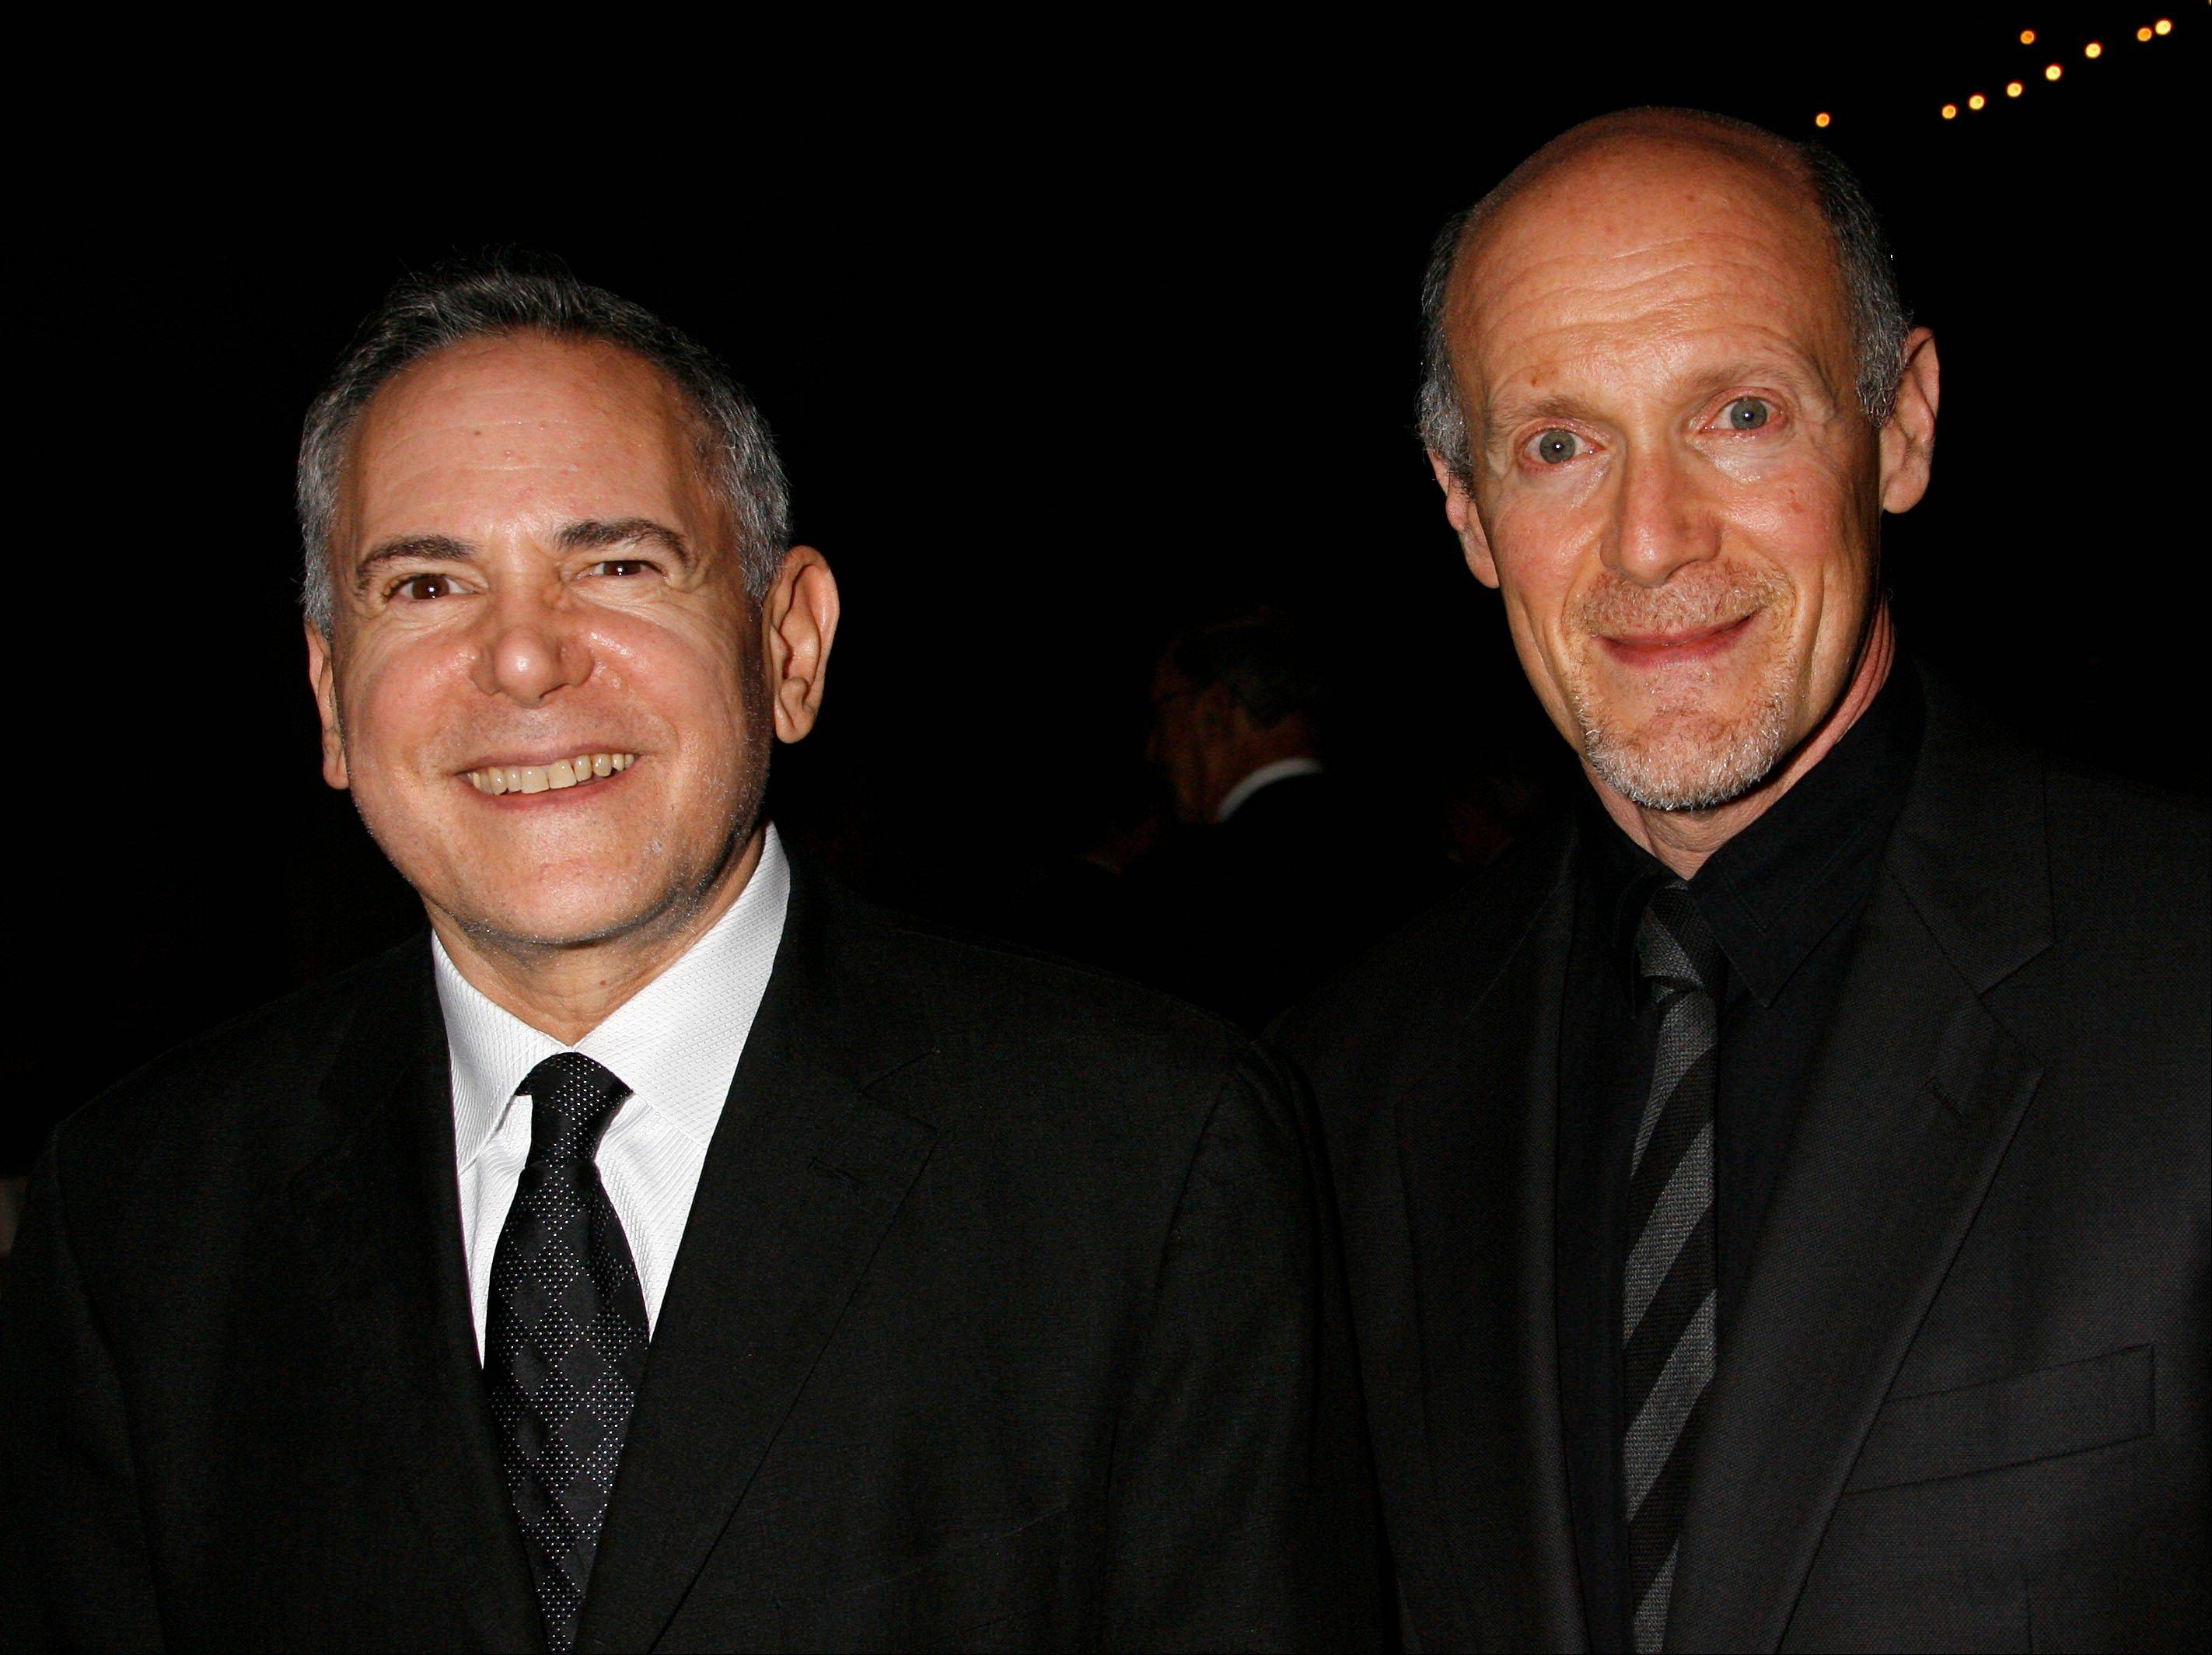 "This Nov. 15, 2007 file photo shows Craig Zadan, left, and Neil Meron, producers of the film ""Hairspray"" at the Santa Barbara International Film Festival's Kirk Douglas Award for Excellence in Film presented to actor John Travolta in Santa Barbara, Calif. Zadan and Meron will produce the Oscars again. The film academy announced Tuesday, April 17, 2013, that it has invited Zadan and Meron to return for the 2014 Academy Awards telecast."